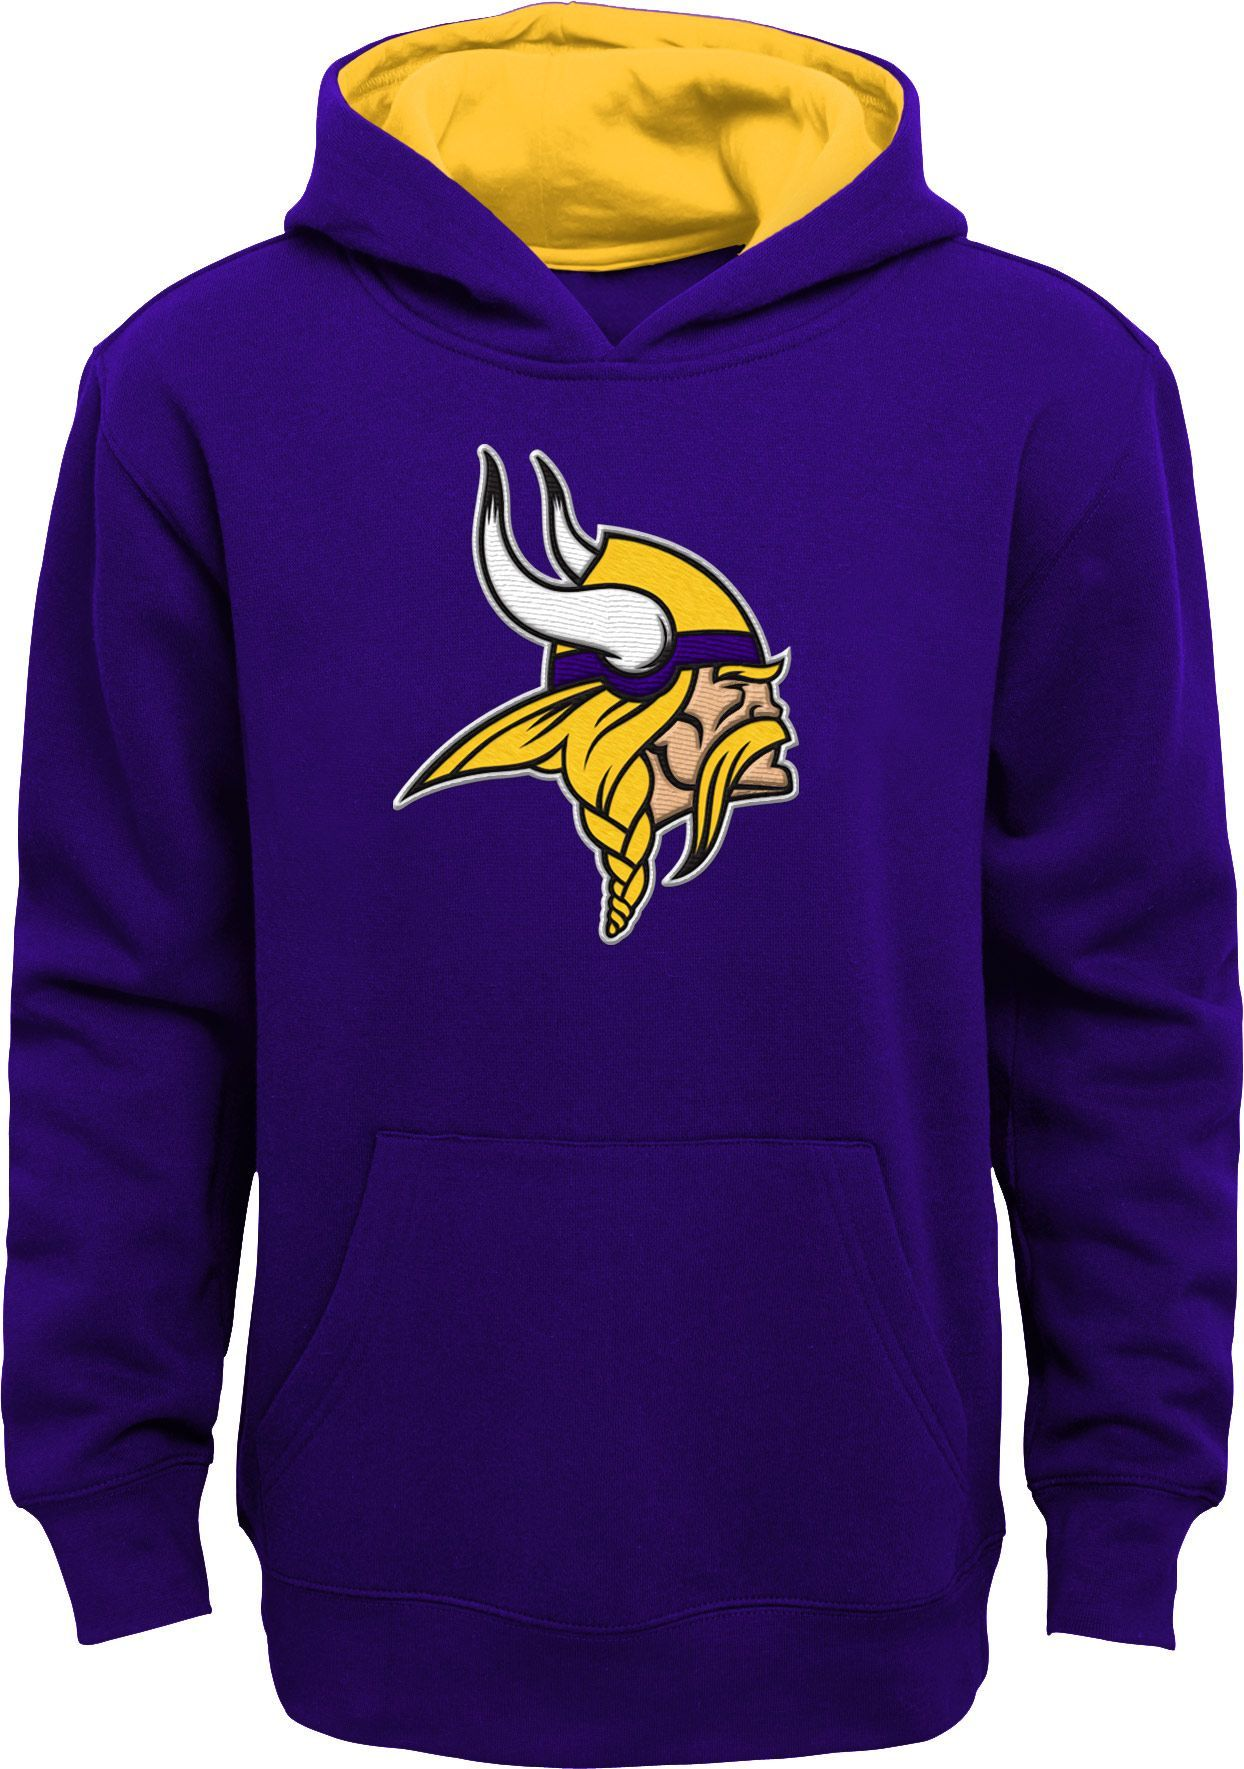 Team Apparel Youth Minnesota Prime Purple Pullover Hoodie in 2019  for sale